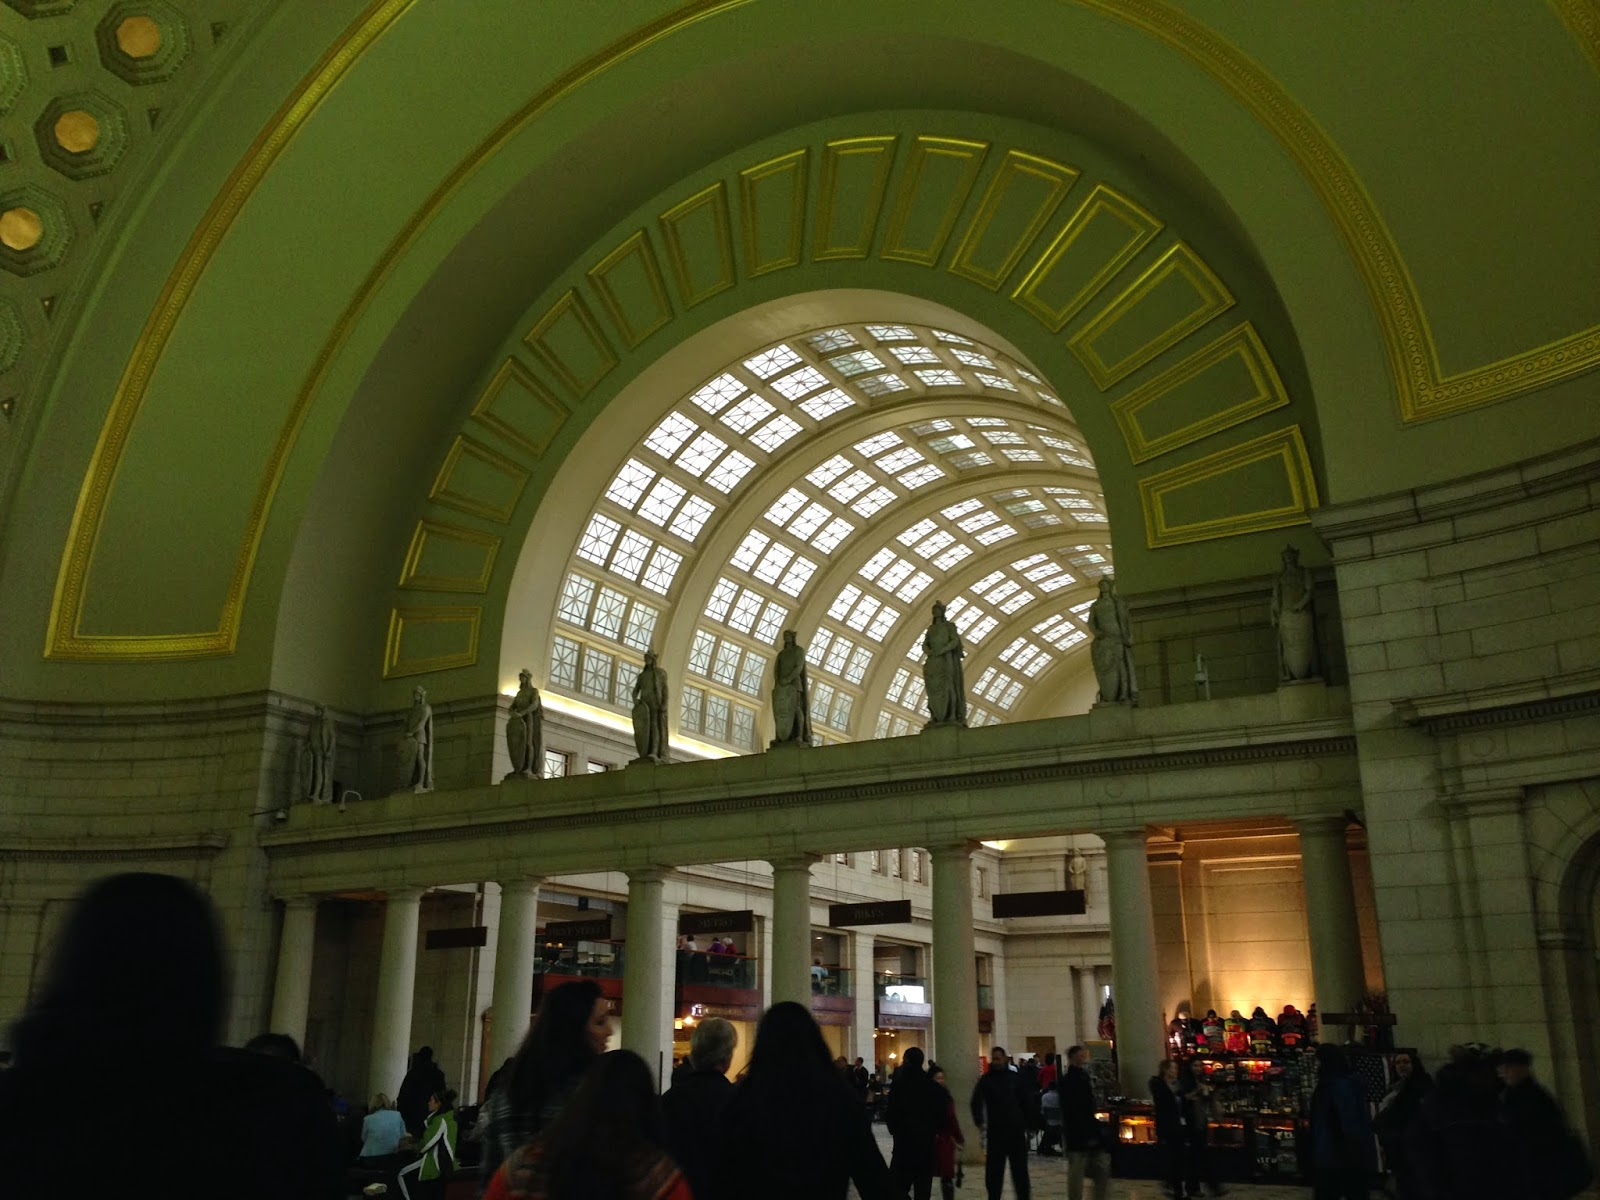 Inside Washington D.C. train station